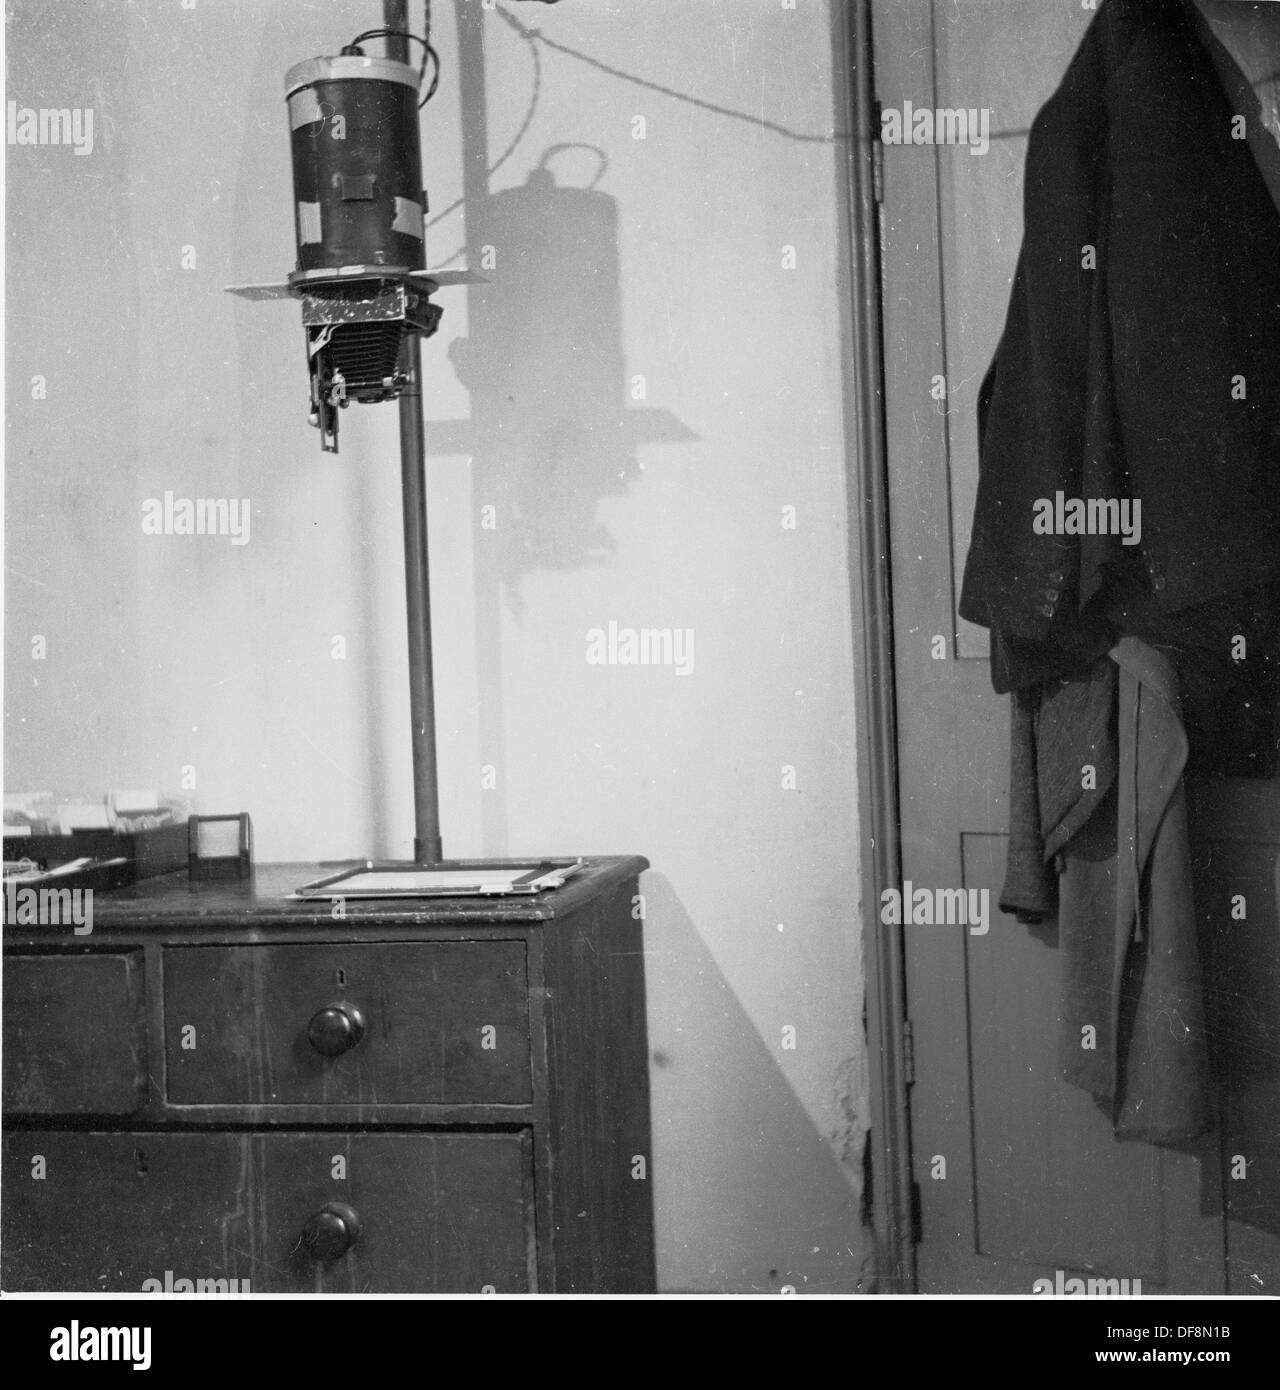 Historical,1950s, a rostrum camera mounted onto a rod and used for taking close up images. - Stock Image